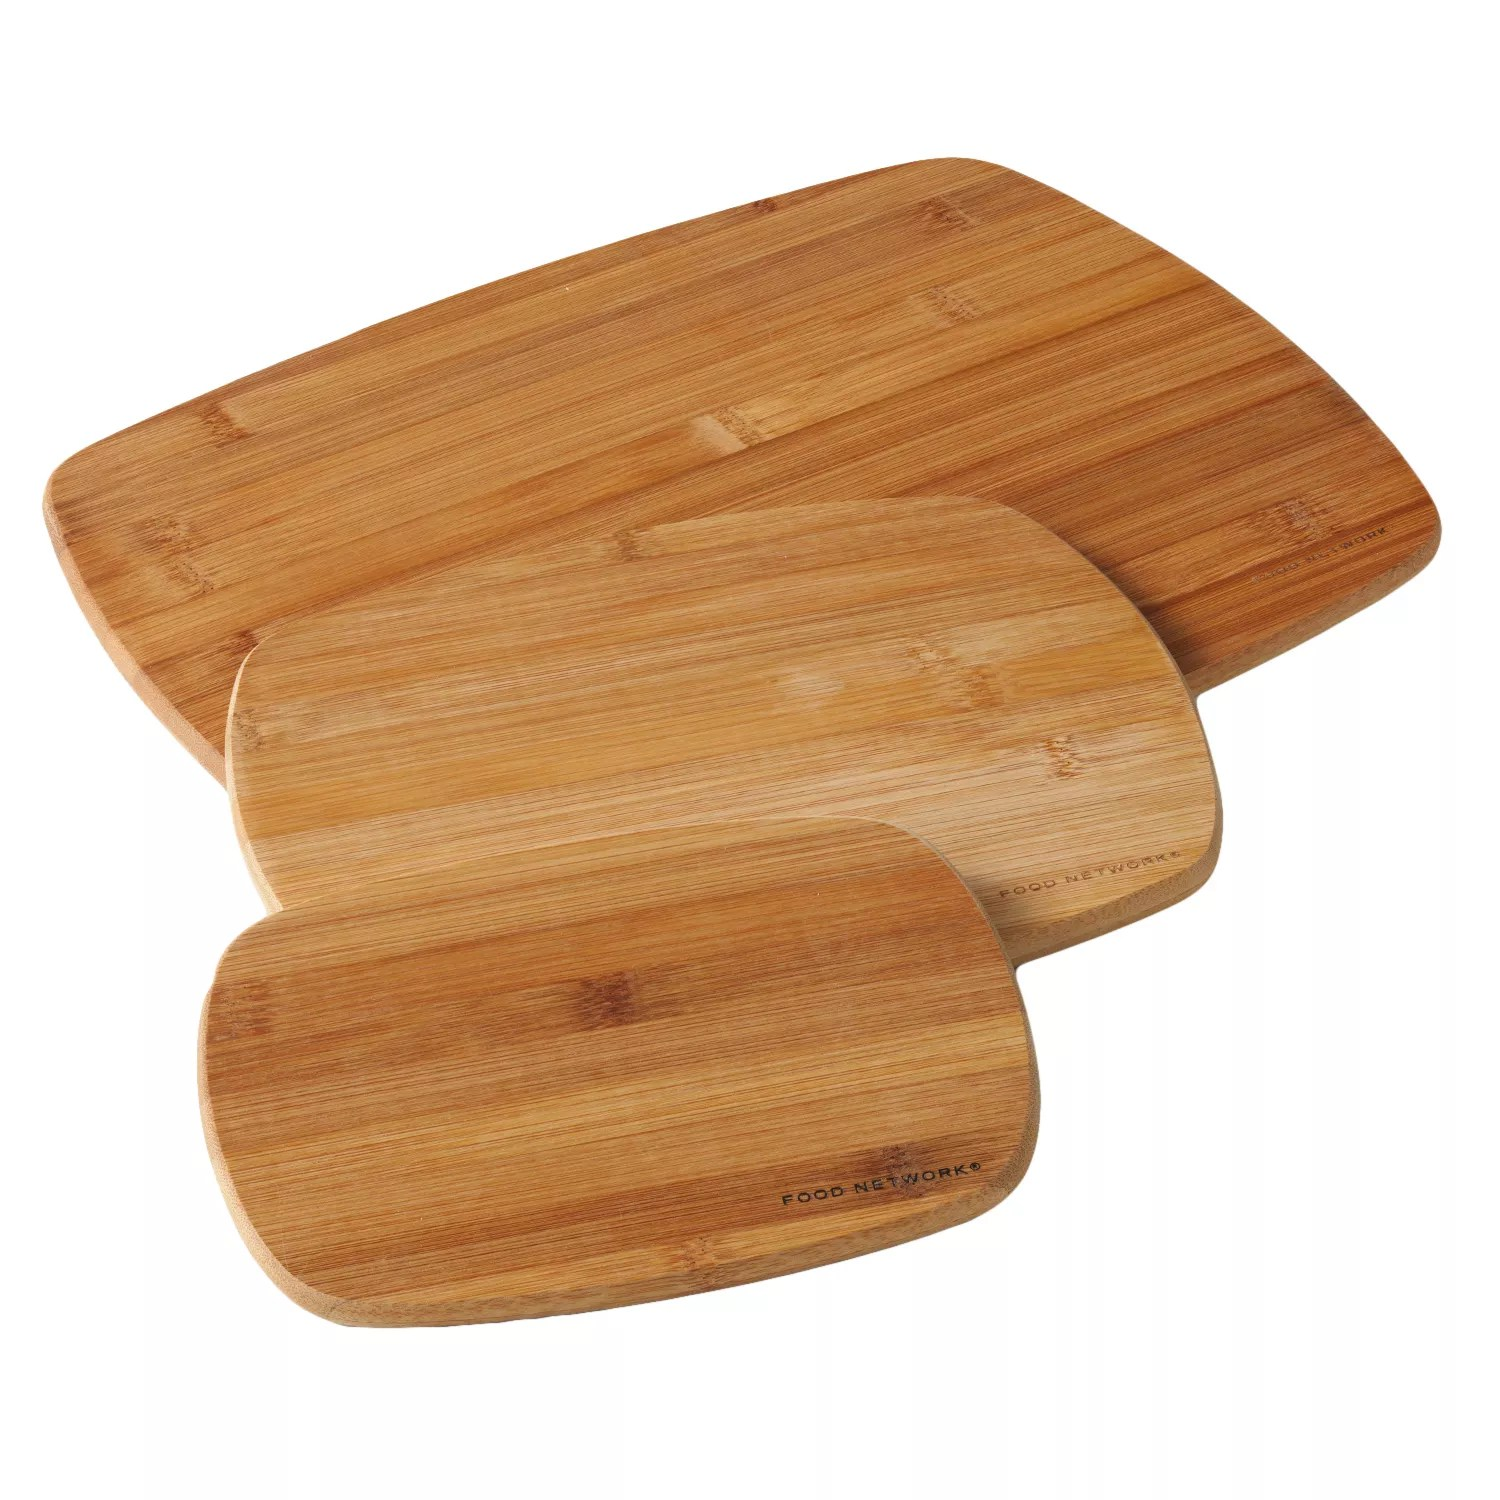 kitchen cutting boards diy outdoor cutlery knives dining kohl s bamboo board set